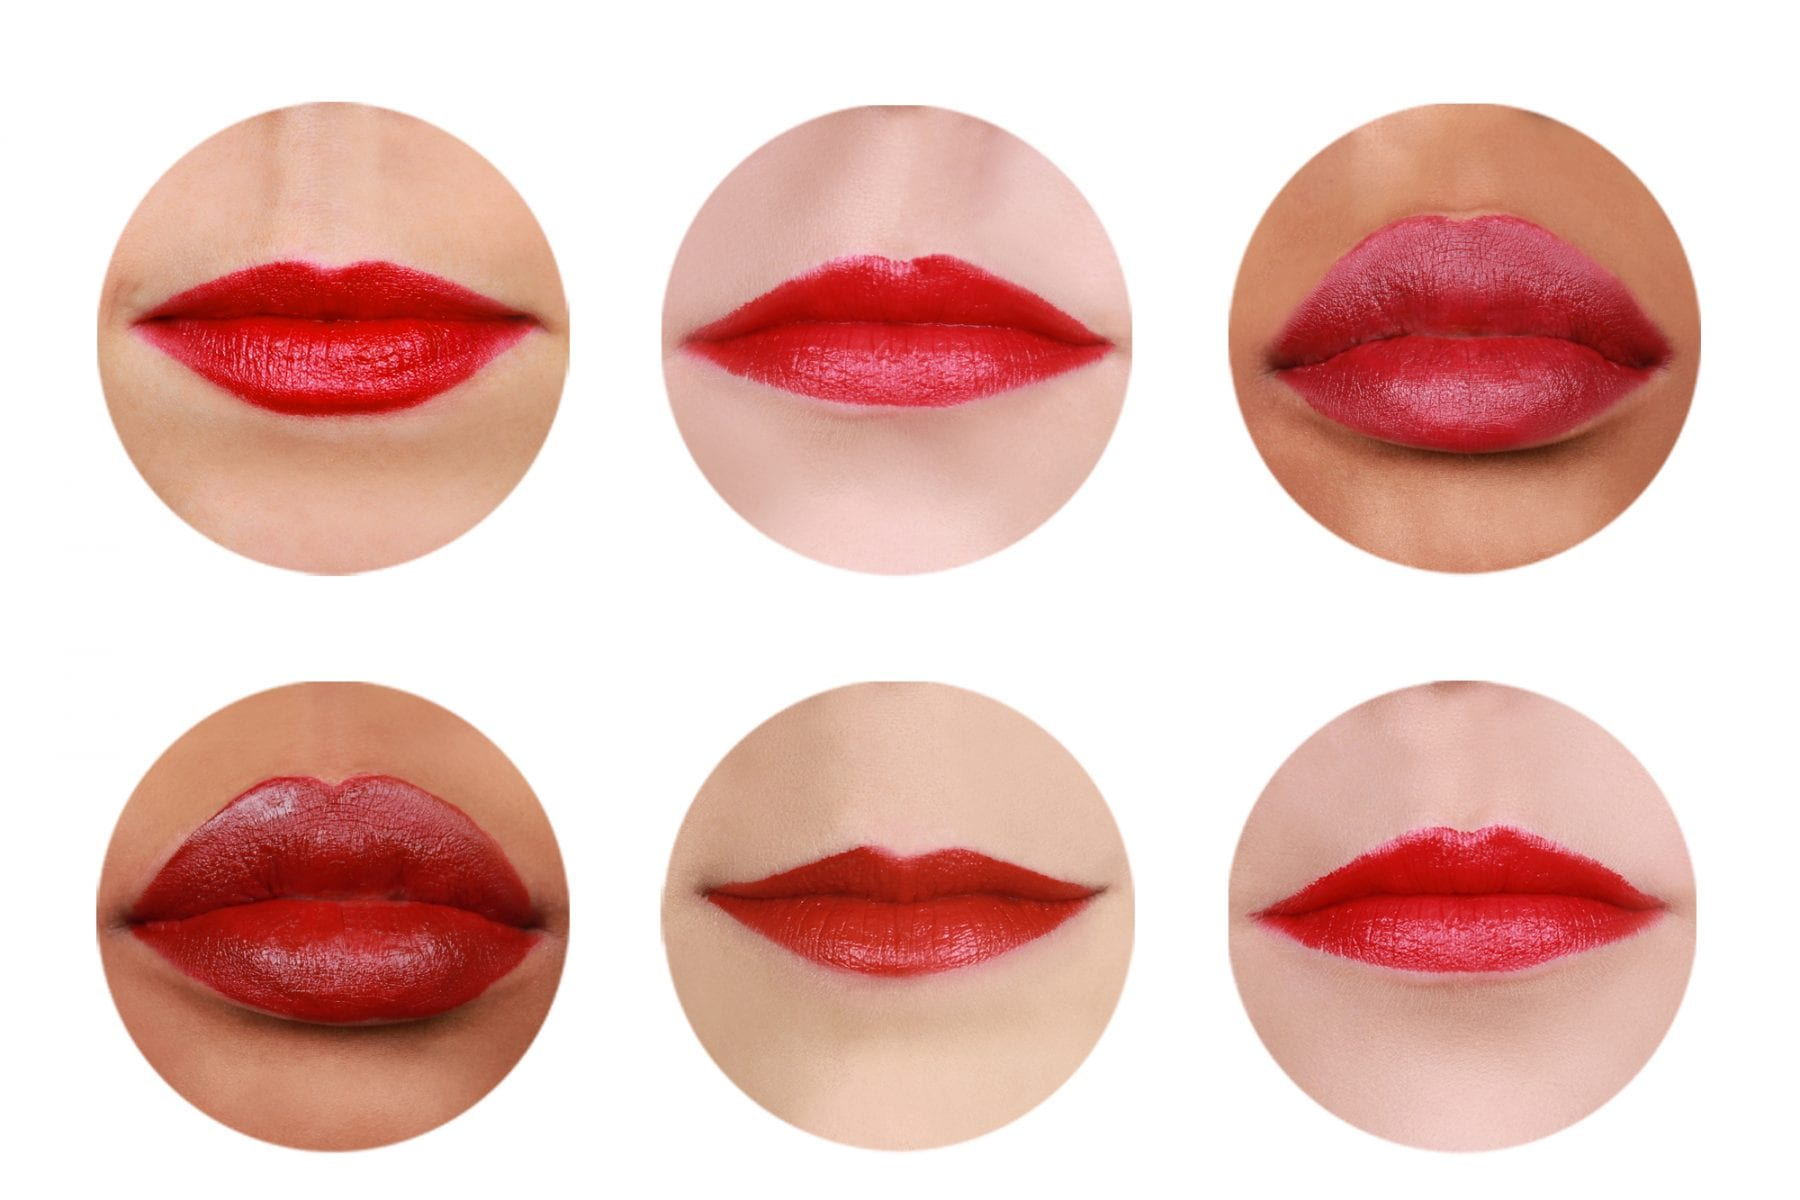 The Best Red Lipstick For Every Skin Tone